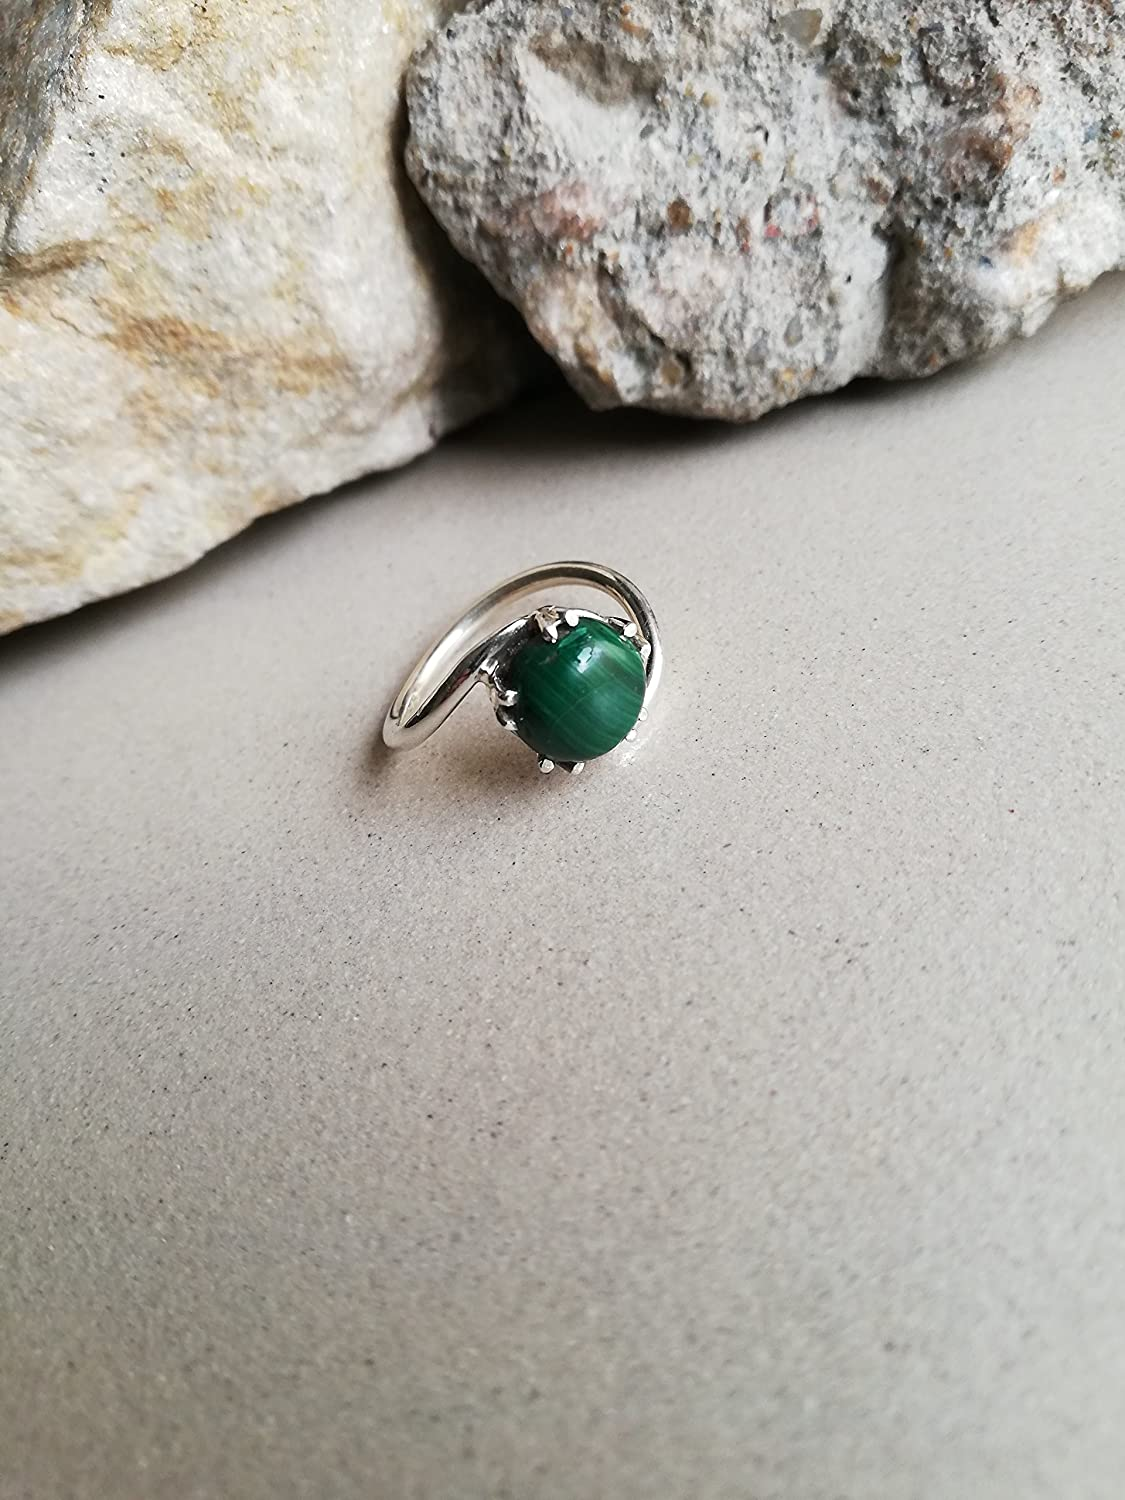 Malachite Ring, 925 Sterling Silver Ring, Staking Ring, Prong Ring, Attractive Ring, Bohemian Ring, Gypsy Ring, Handmade Ring, Hypoallergenic Ring, Prong Ring, Protraction Ring, Boho Ring, US All Size Ring.......